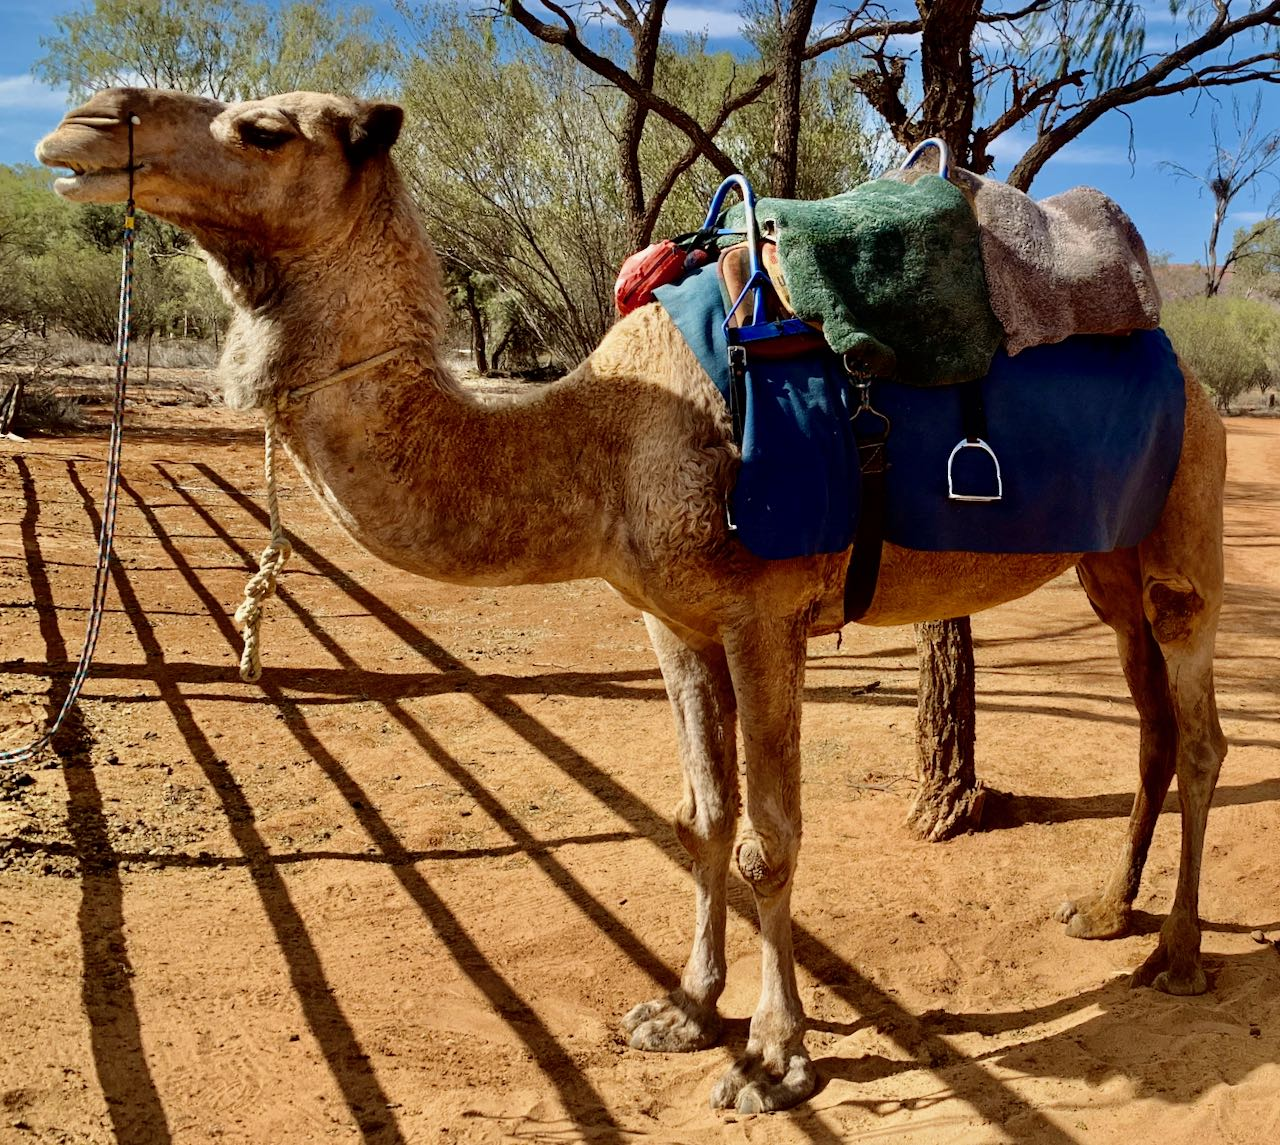 Camel Safari Alice Springs Australia